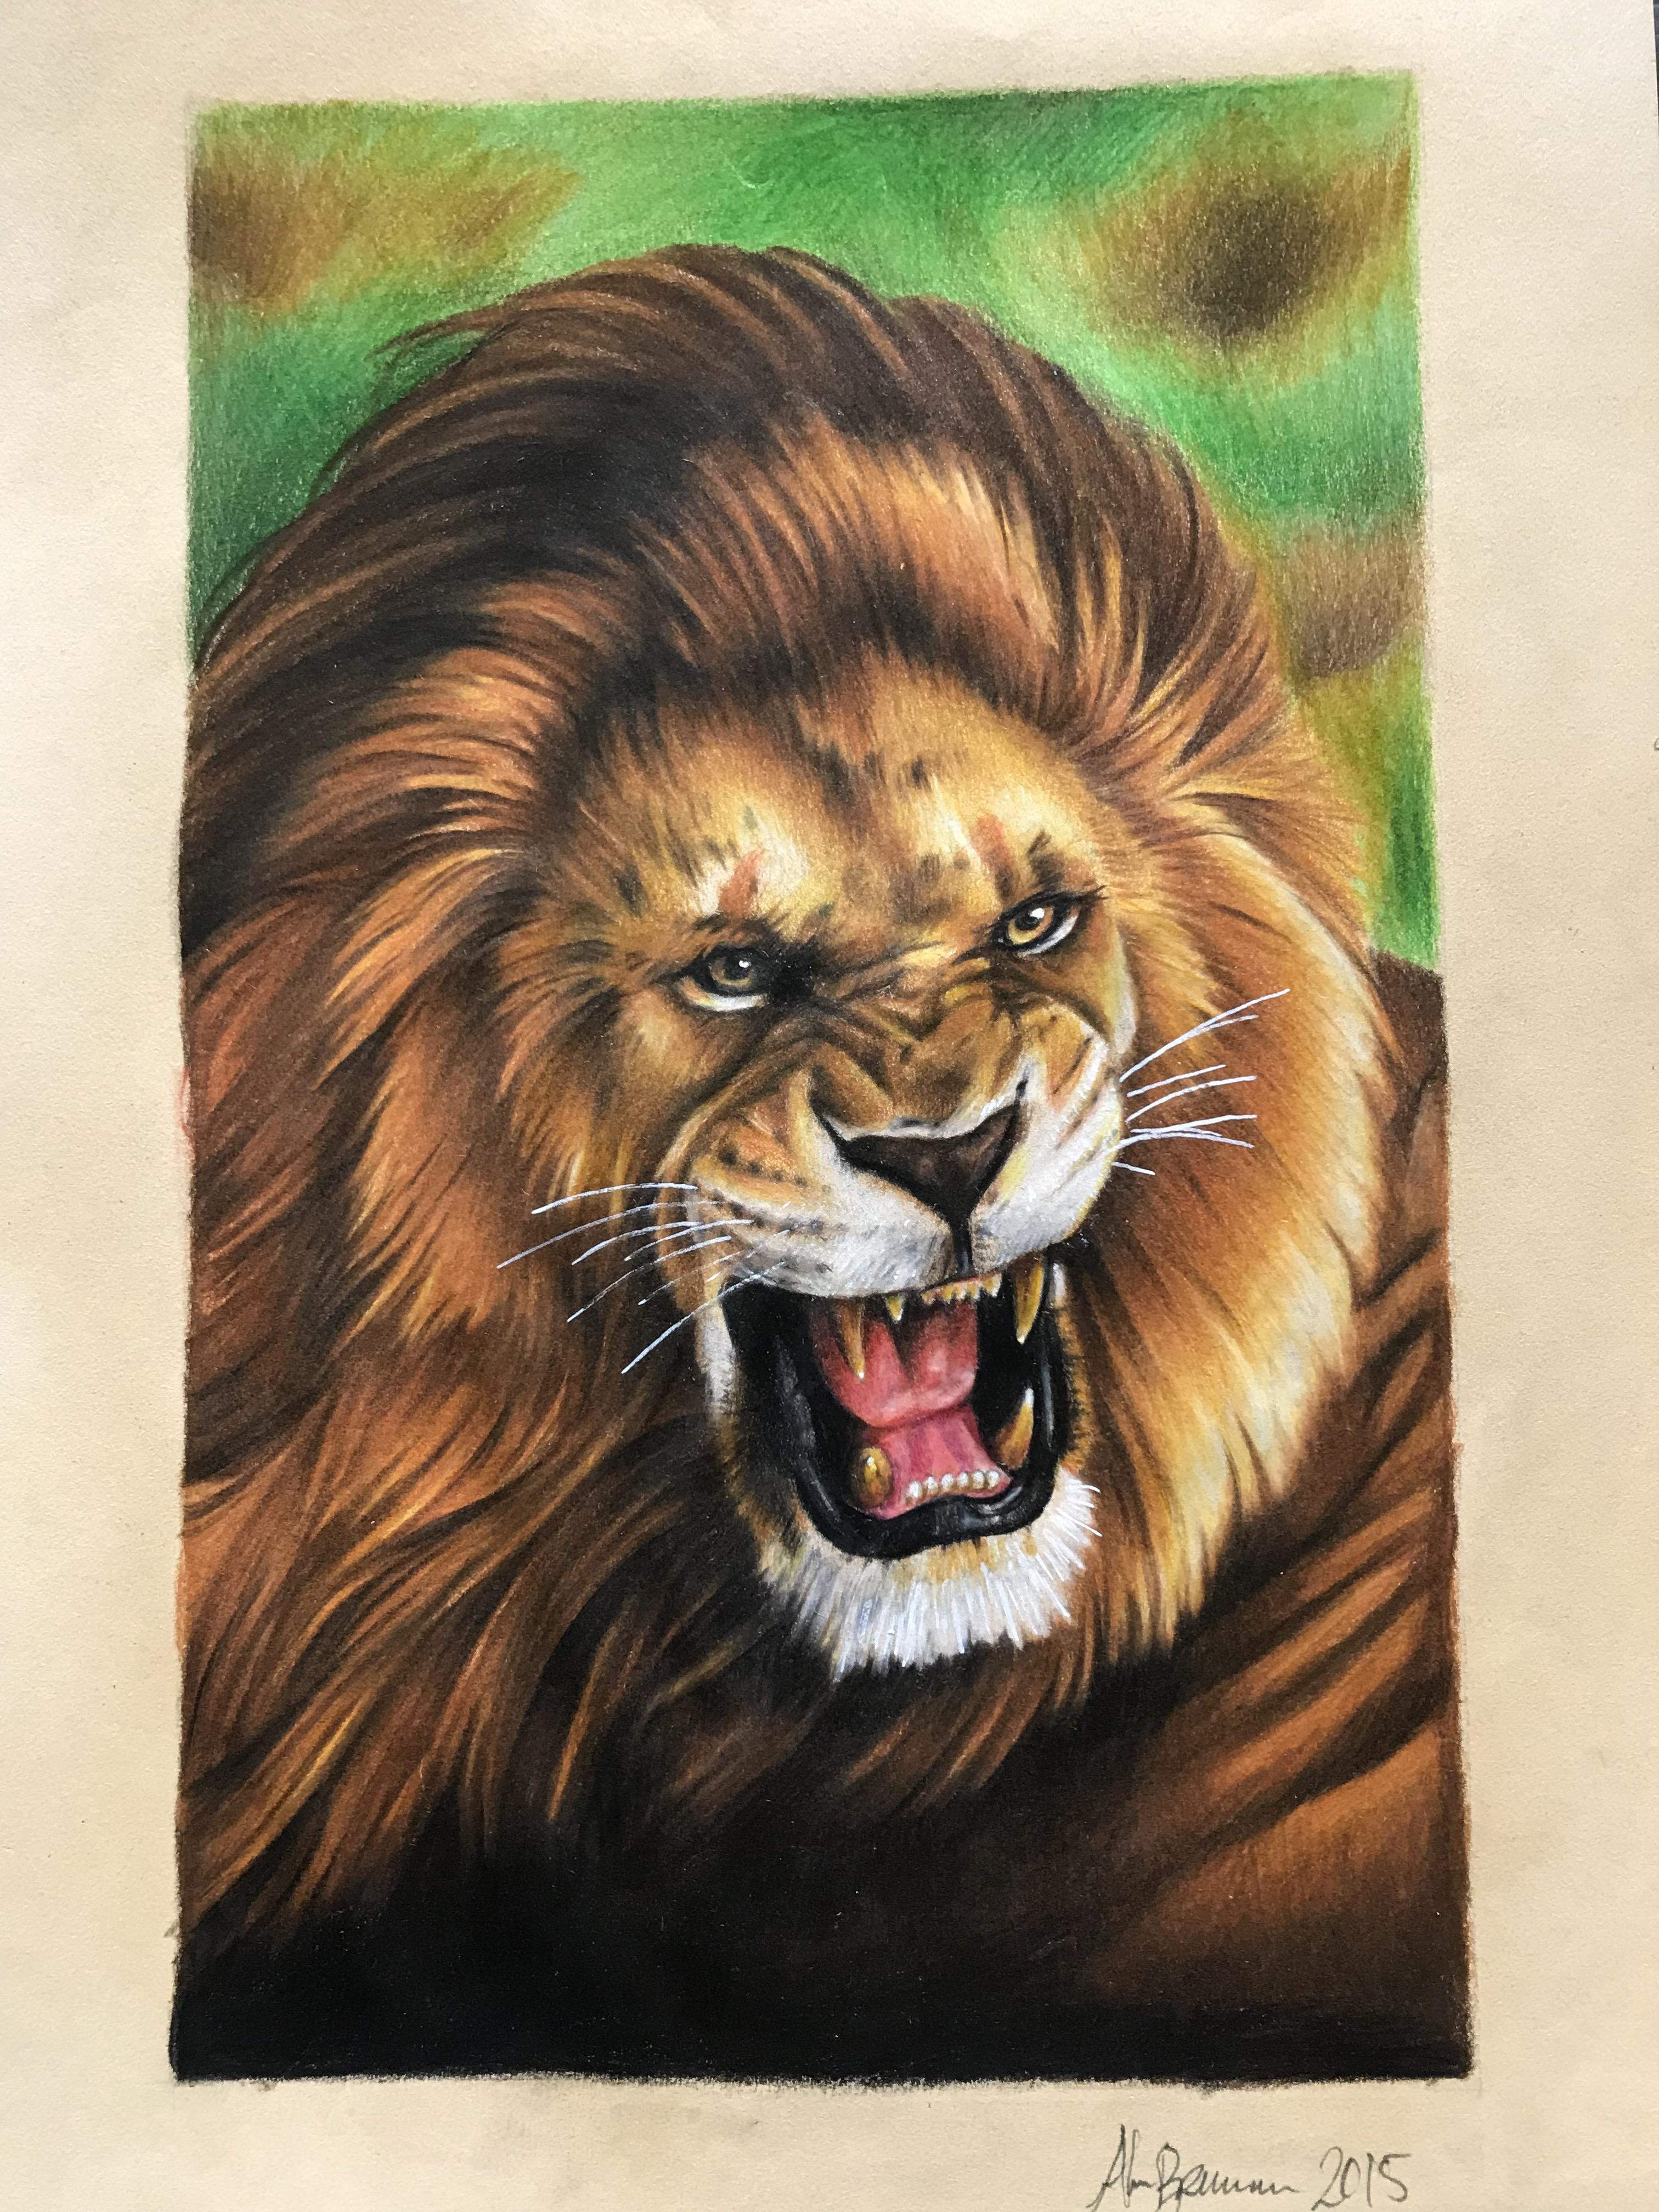 Lion Drawing Color : drawing, color, Color, Pencil, Drawing